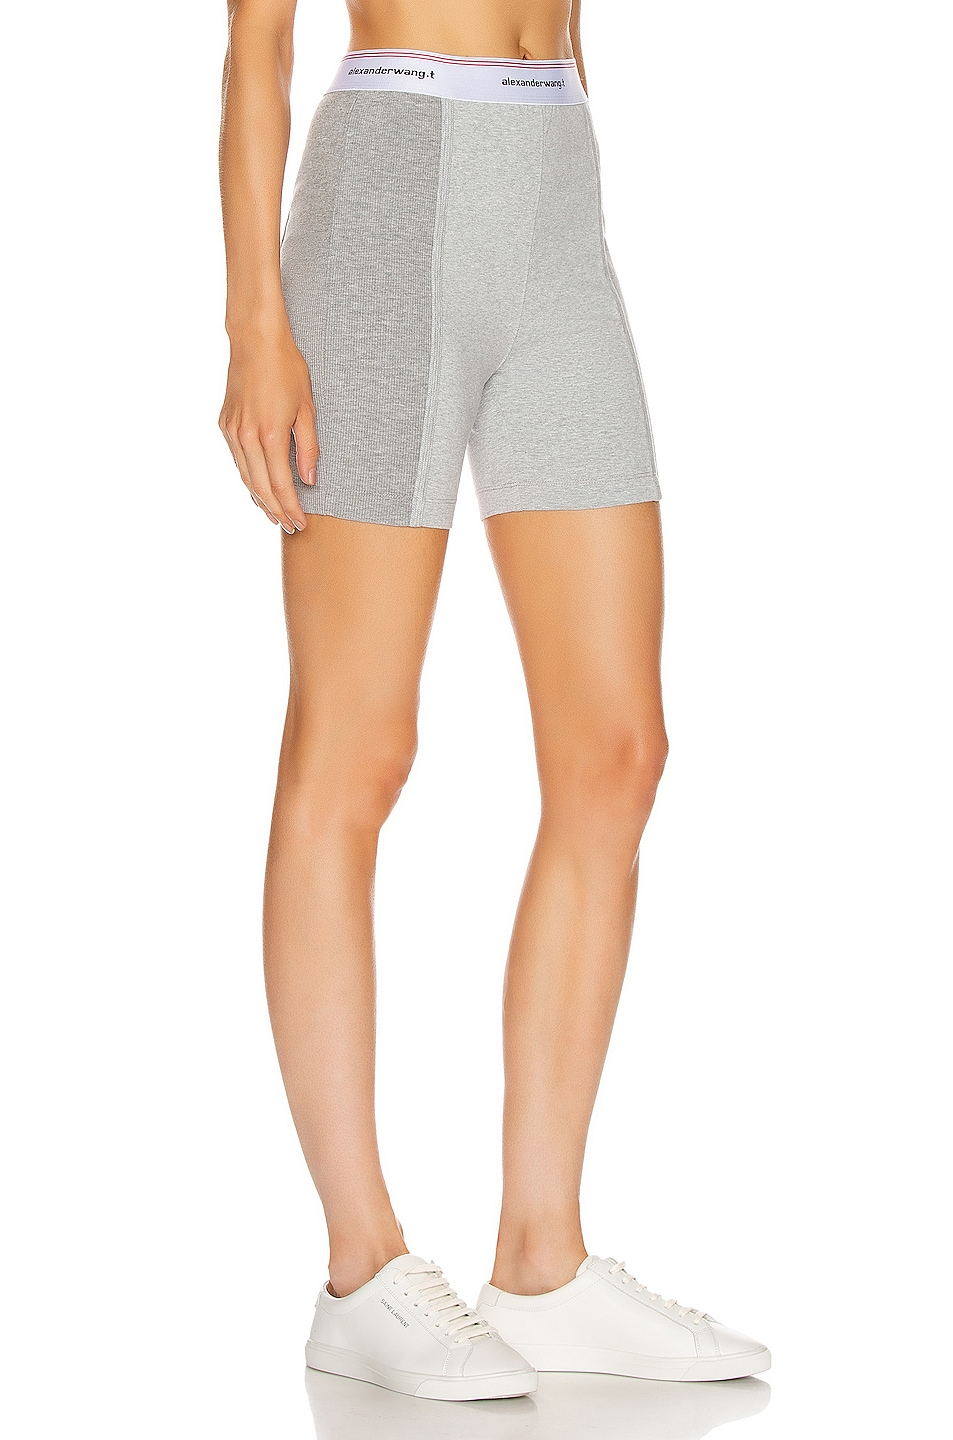 Image 2 of T by Alexander Wang Wash and Go Rib Biker Shorts in Heather Grey